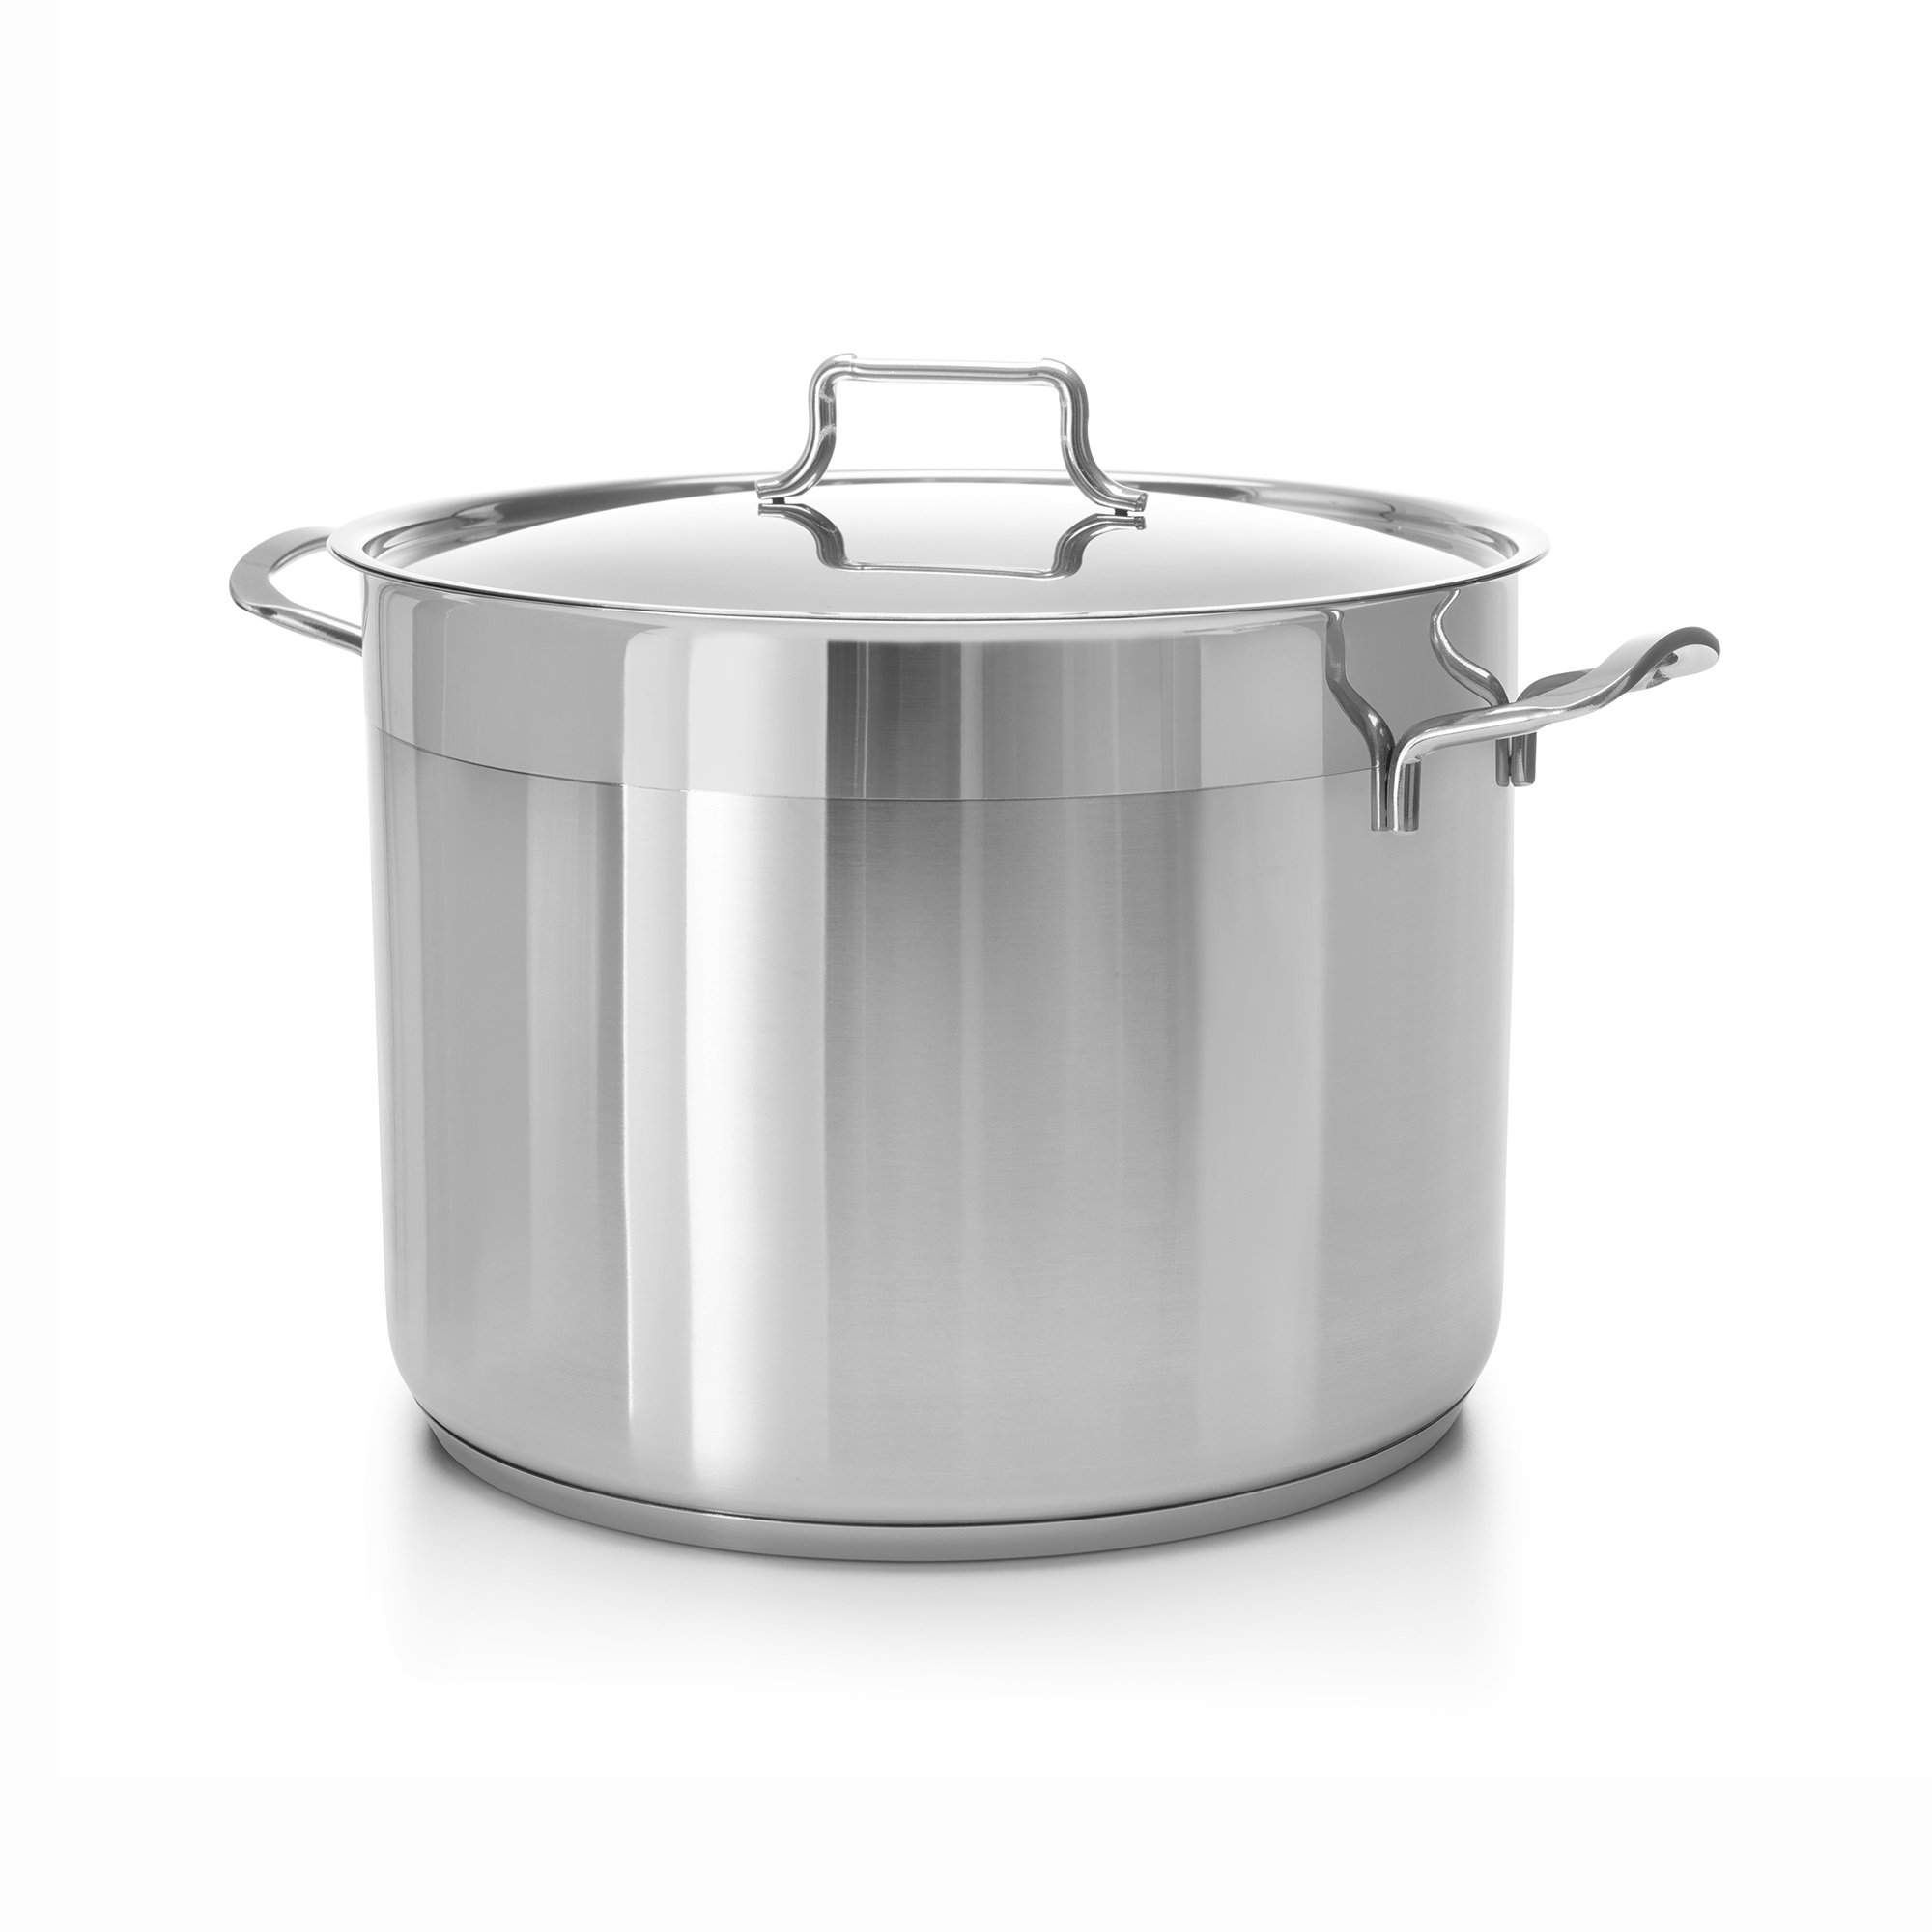 Ybmhome Hascevher Classic Stainless SteelChef'sInduction Compatible Stockpot CoveredMulti-Purpose Cookwarewith Encapsulated Base H16 (16 Quart)